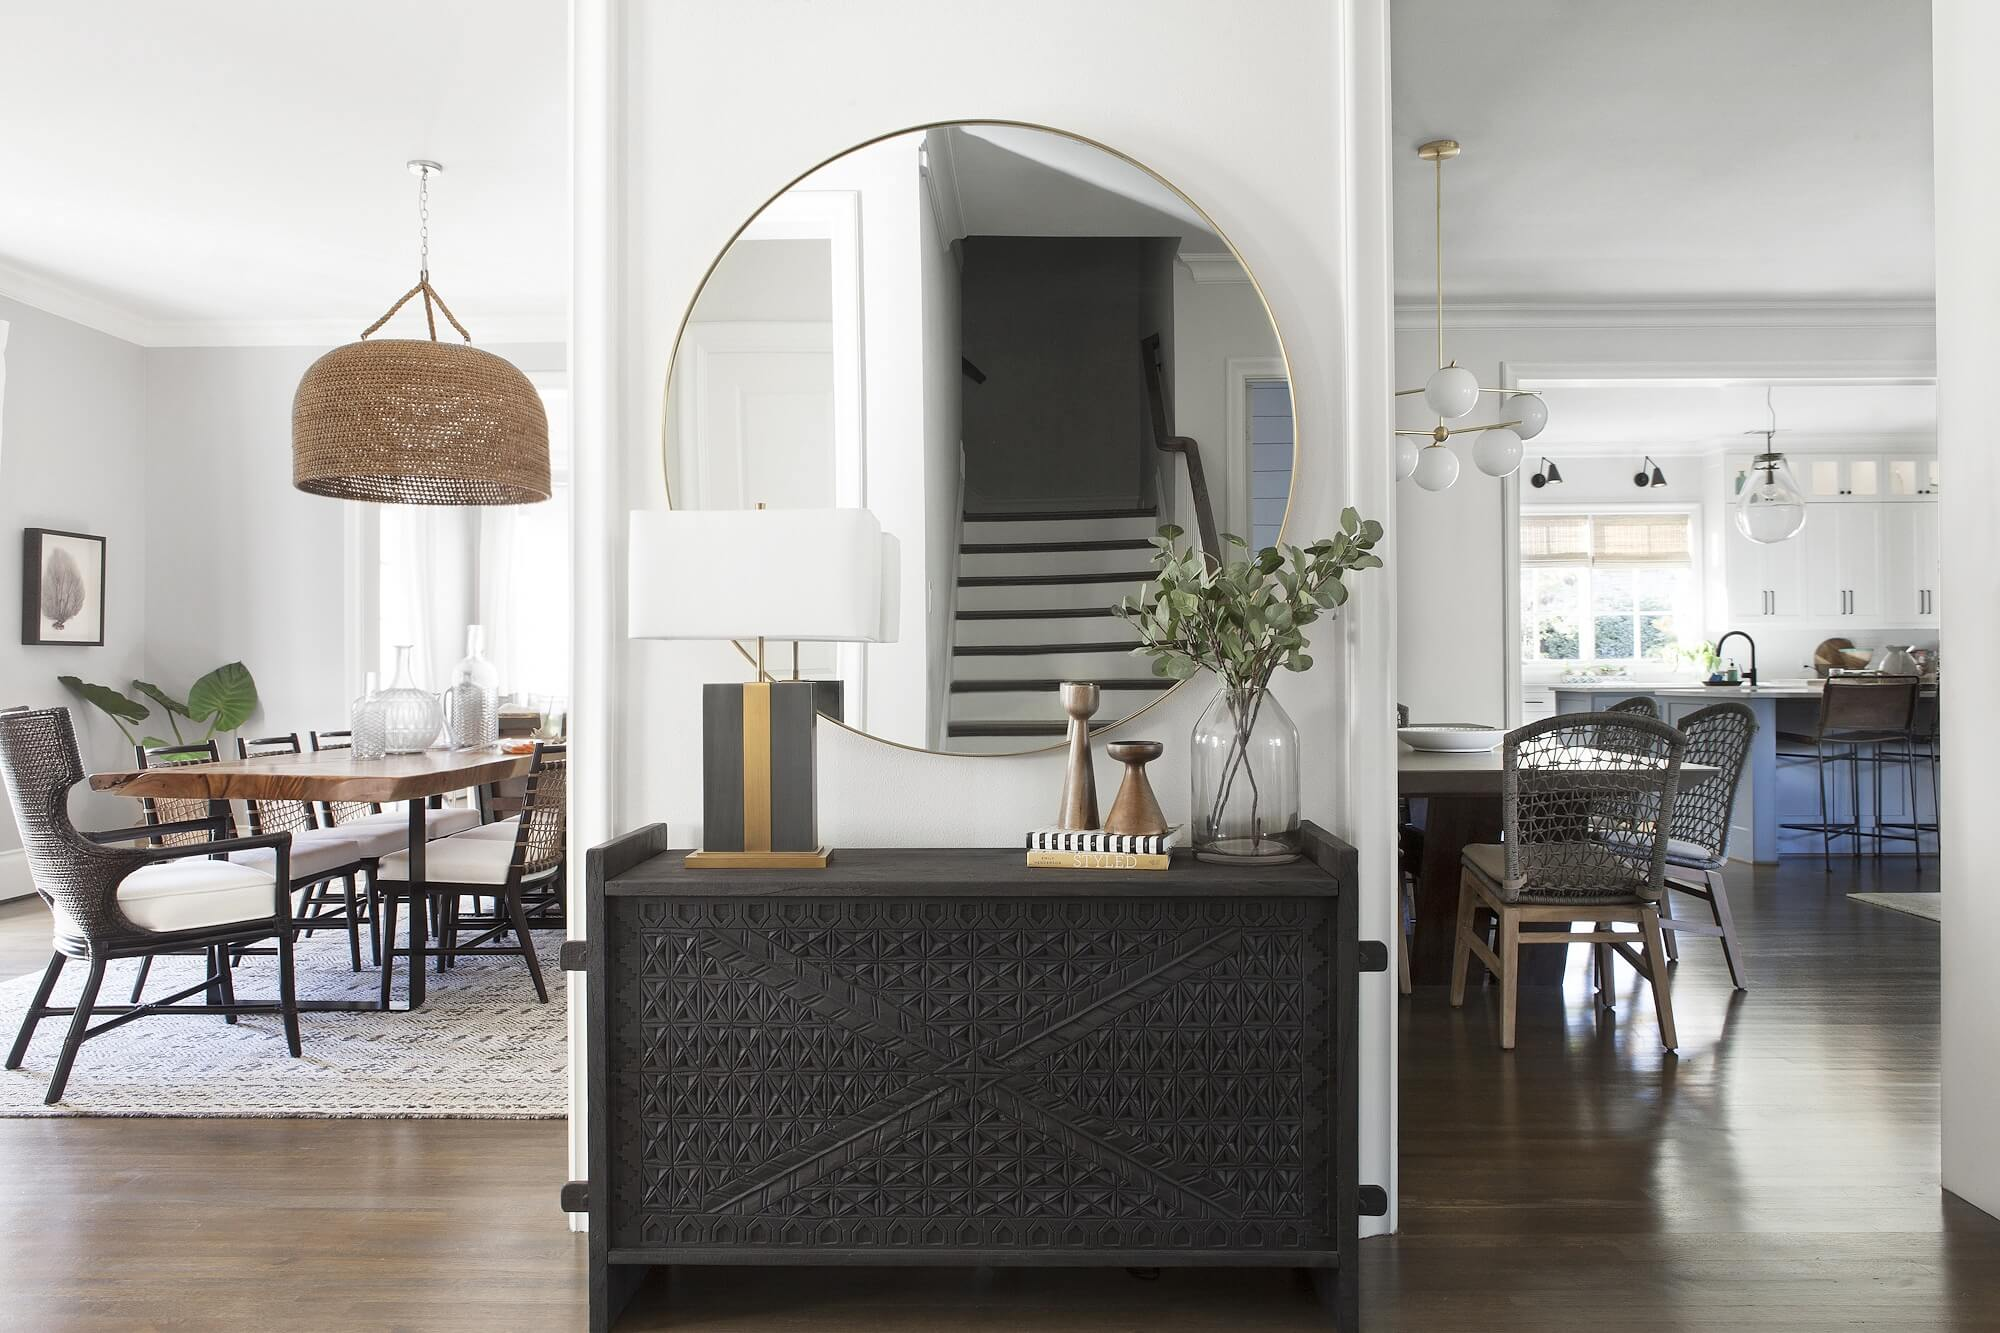 California casual design in Midway Hollow neighborhood   Dallas interior design   Entry   Dining   Kitchen design   ML Interiors Group